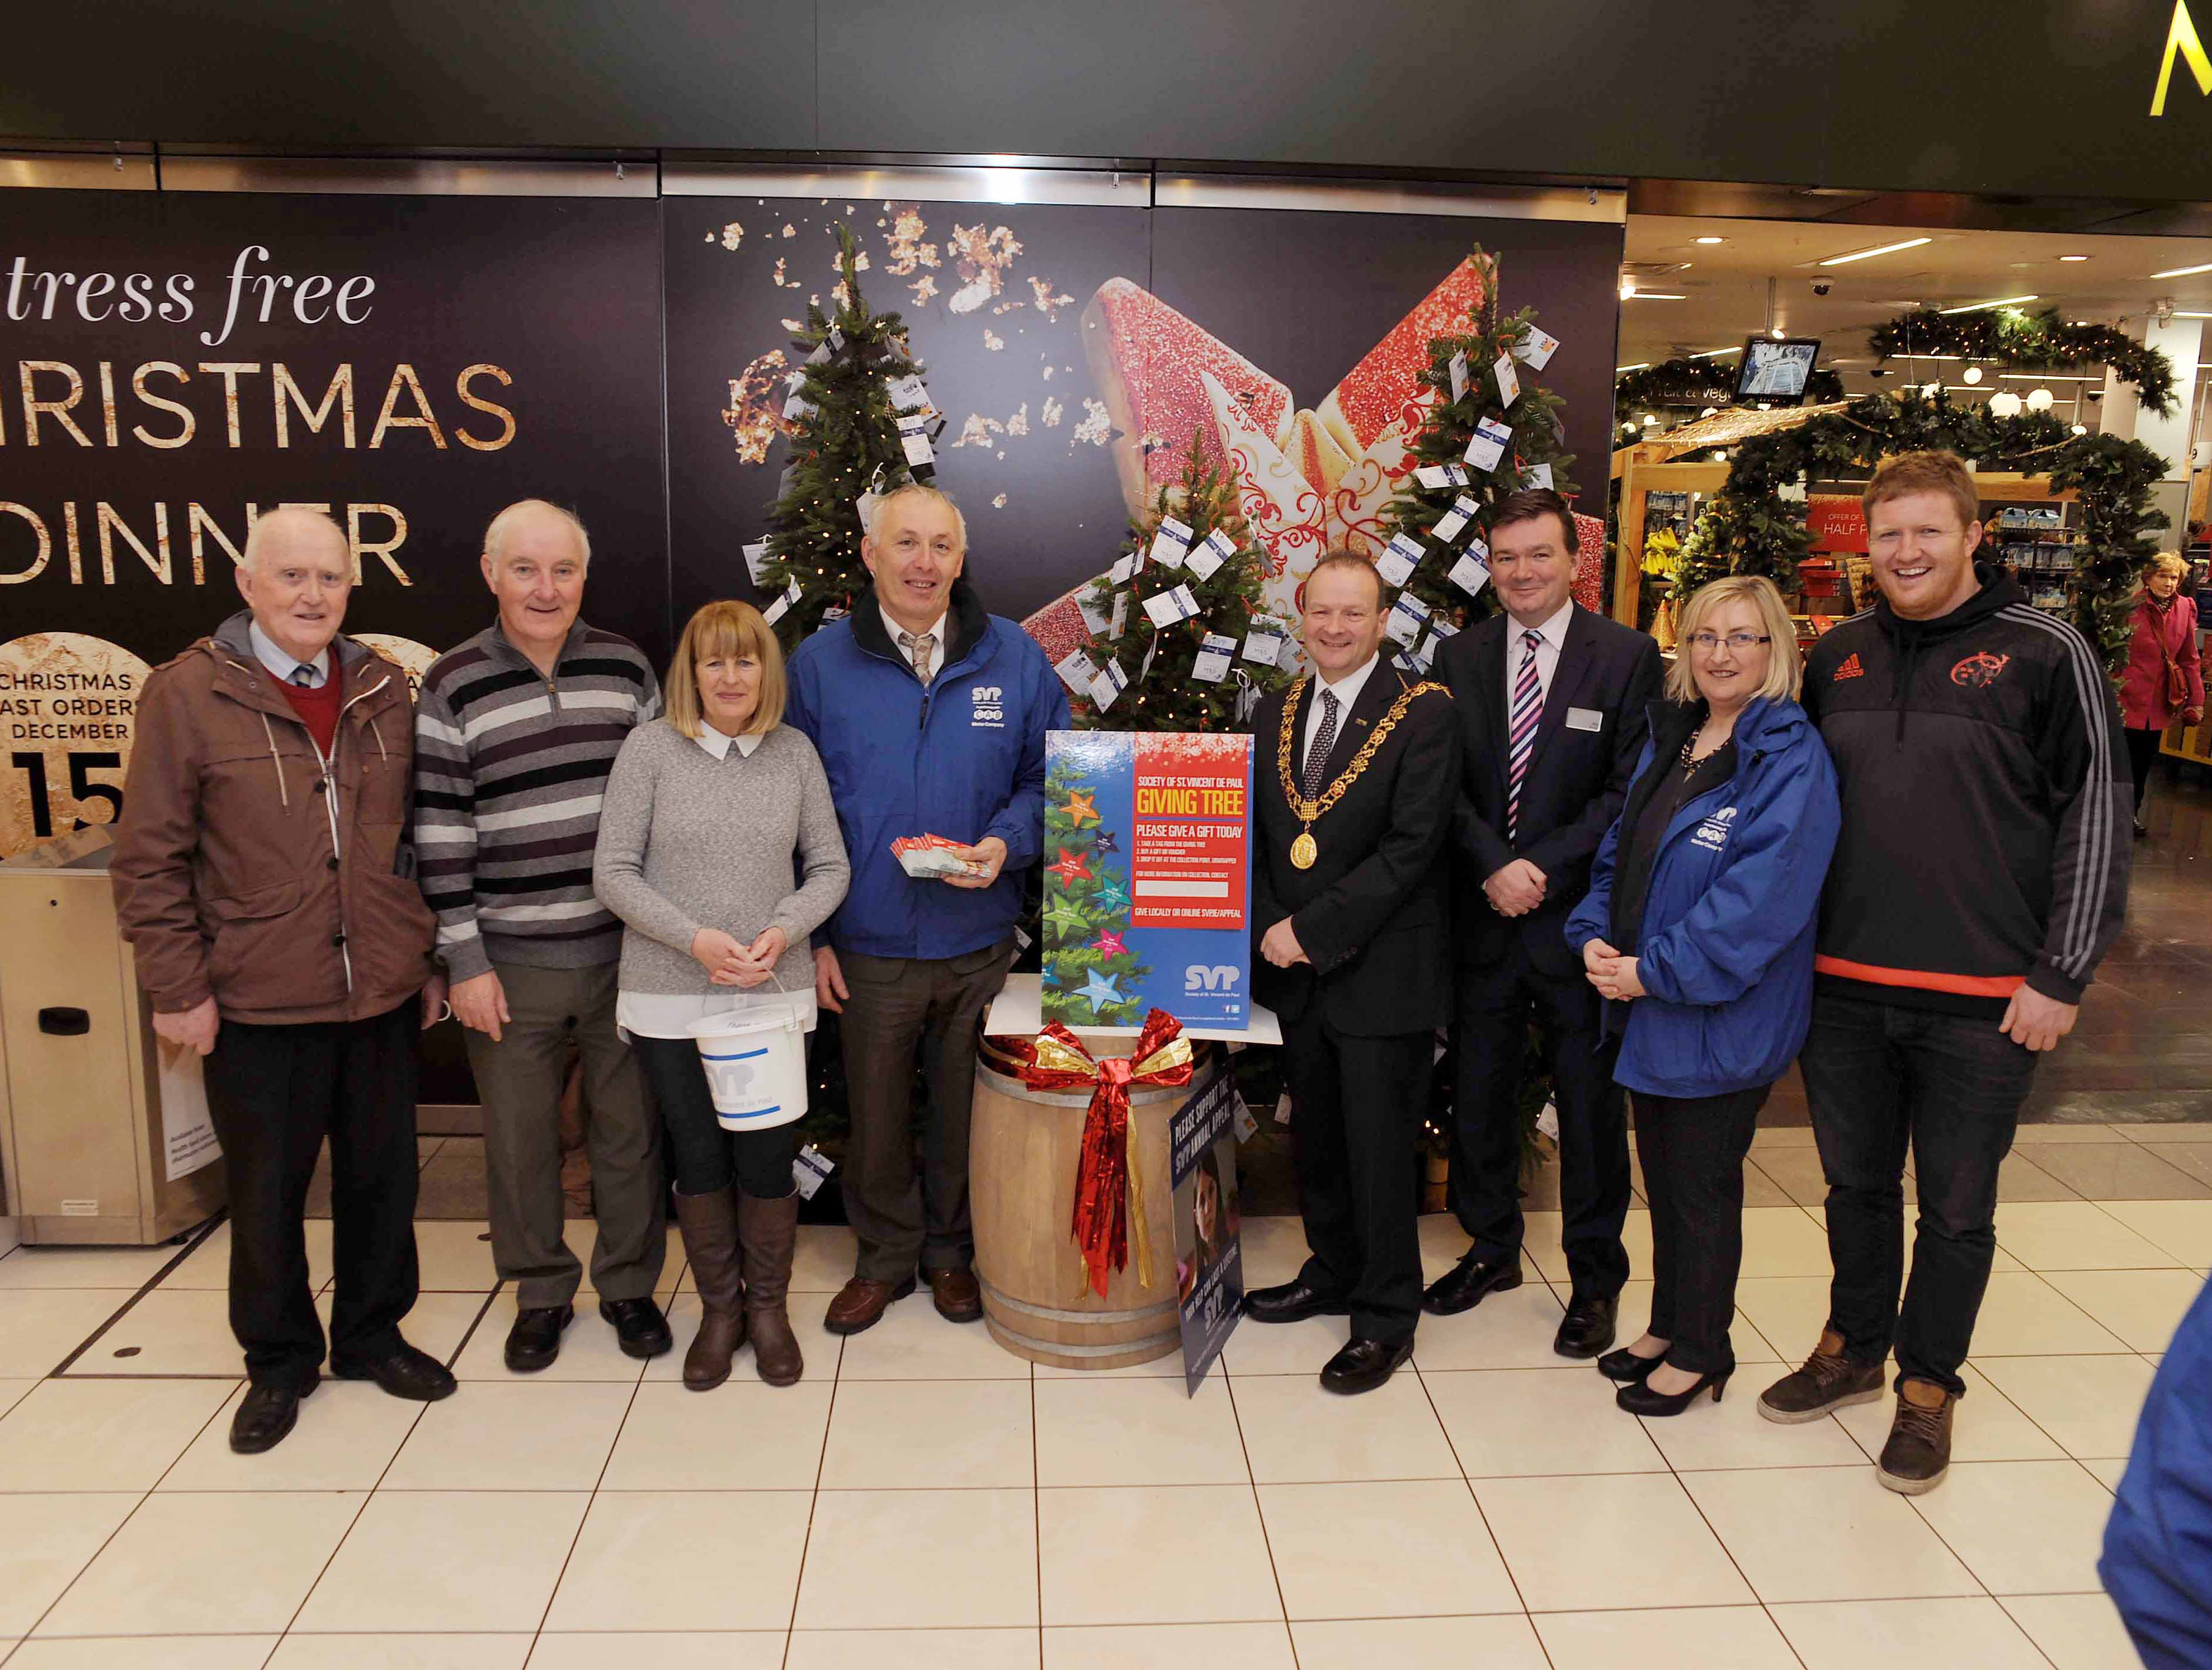 Annual Christmas St Vincent de Paul 'Giving Tree' unveiled in Merchants Quay Shopping Centre Cork City